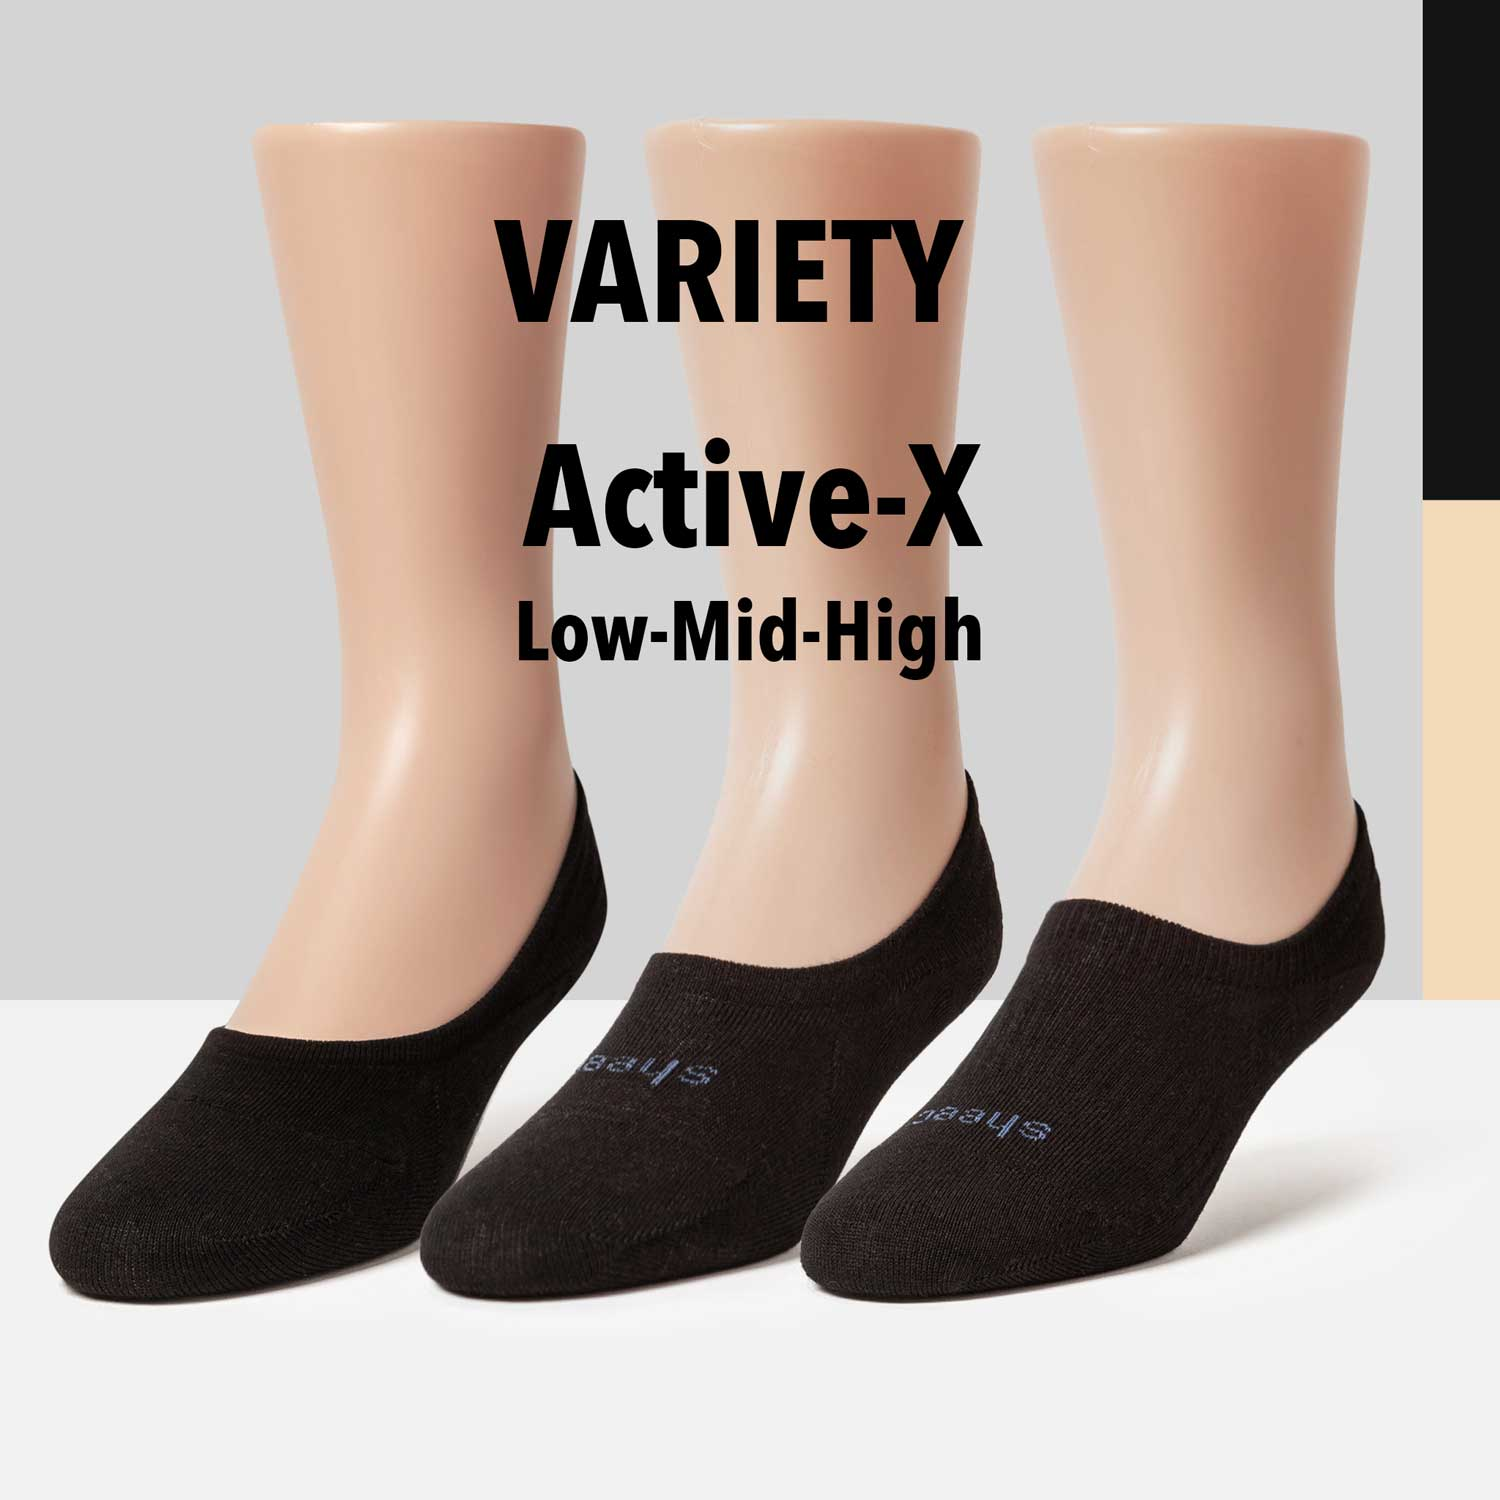 Active-X Variety Low Mid High cuts bundle